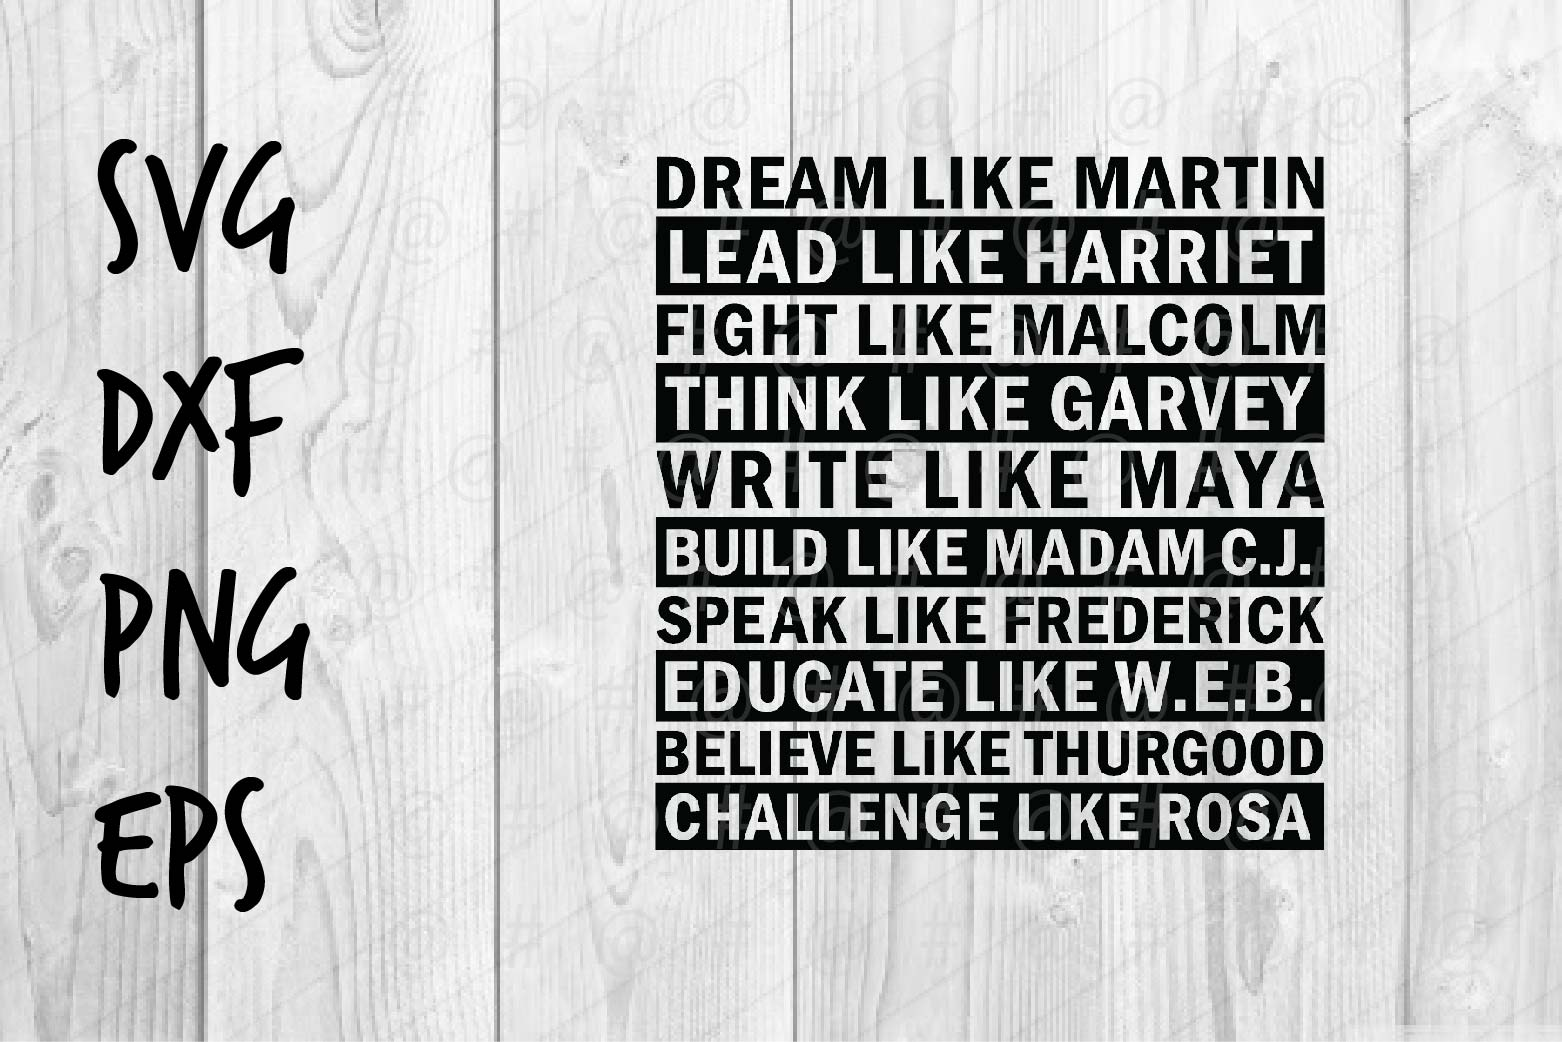 Download Free Dream Like Martin Quote Graphic By Spoonyprint Creative Fabrica for Cricut Explore, Silhouette and other cutting machines.